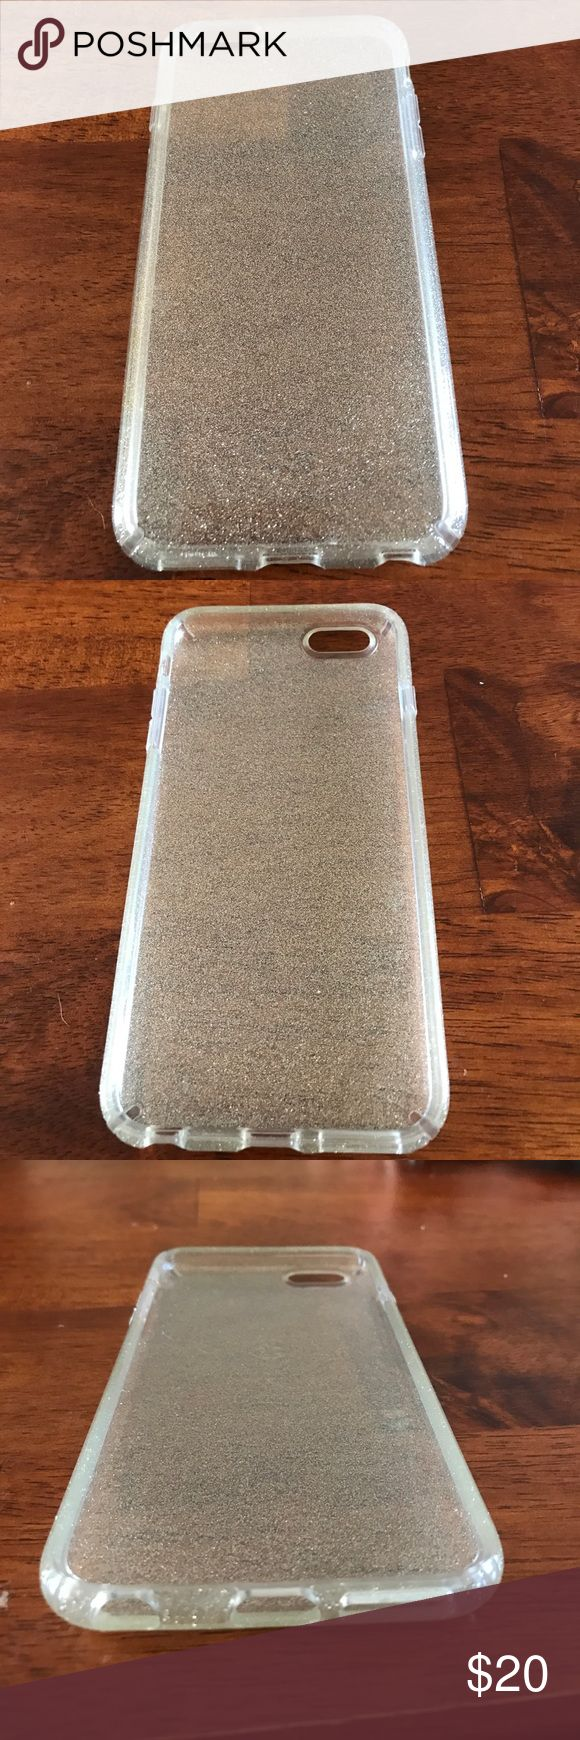 Speck iPhone 6 Plus Case Gold glitter with no signs of wear speck Accessories Phone Cases